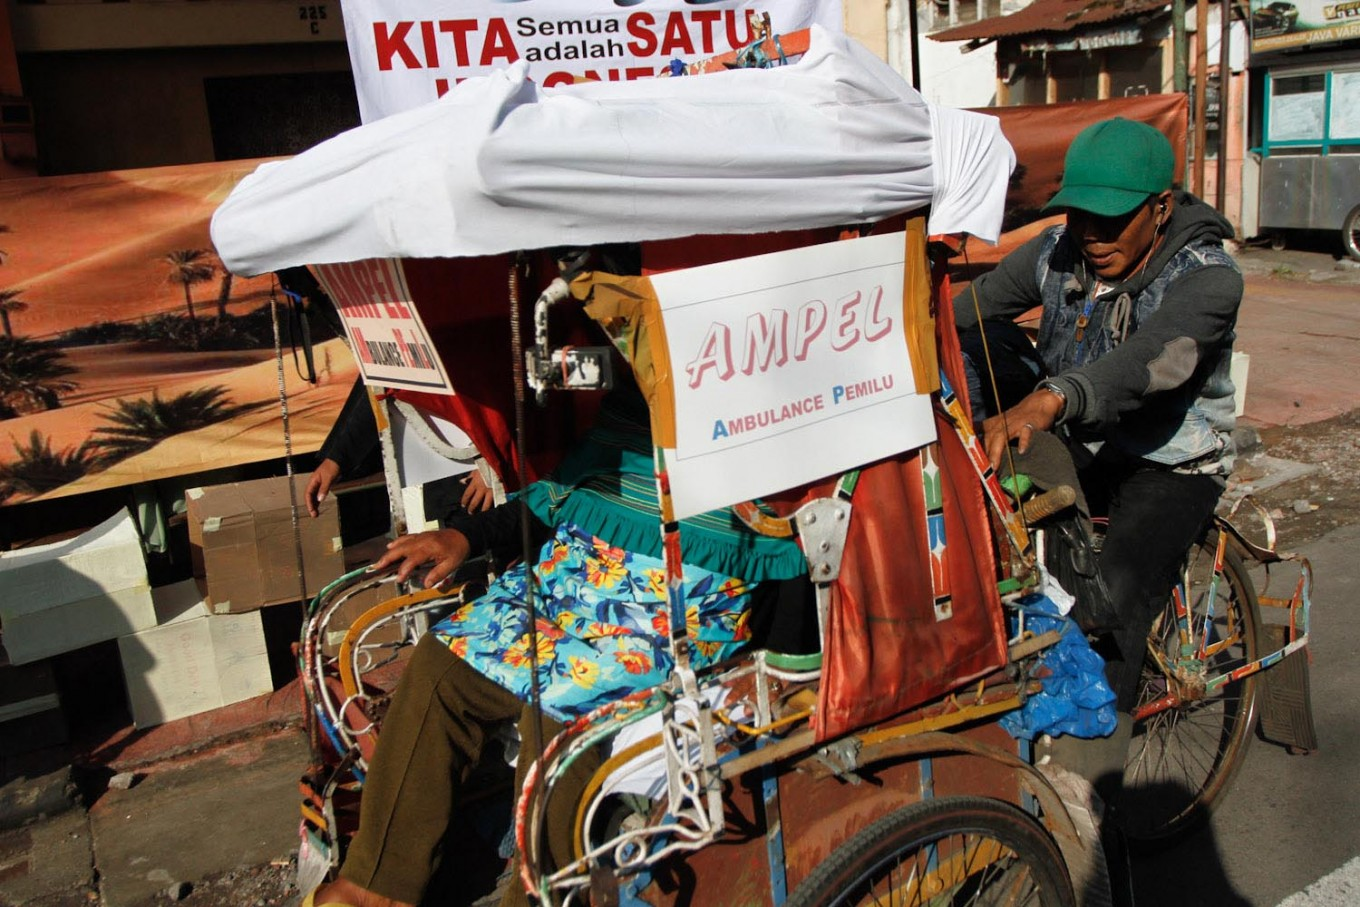 An official drives a voter back home in a pedicab after she cast her vote in Cibadak subdistrict, Astana Anyar district, Bandung on Wednesday, June 27, 2018. The neighborhood unit officials in the subdistrict hired pedicab drivers to pick up and take home elderly voters so they could cast their votes. JP/Arya Dipa